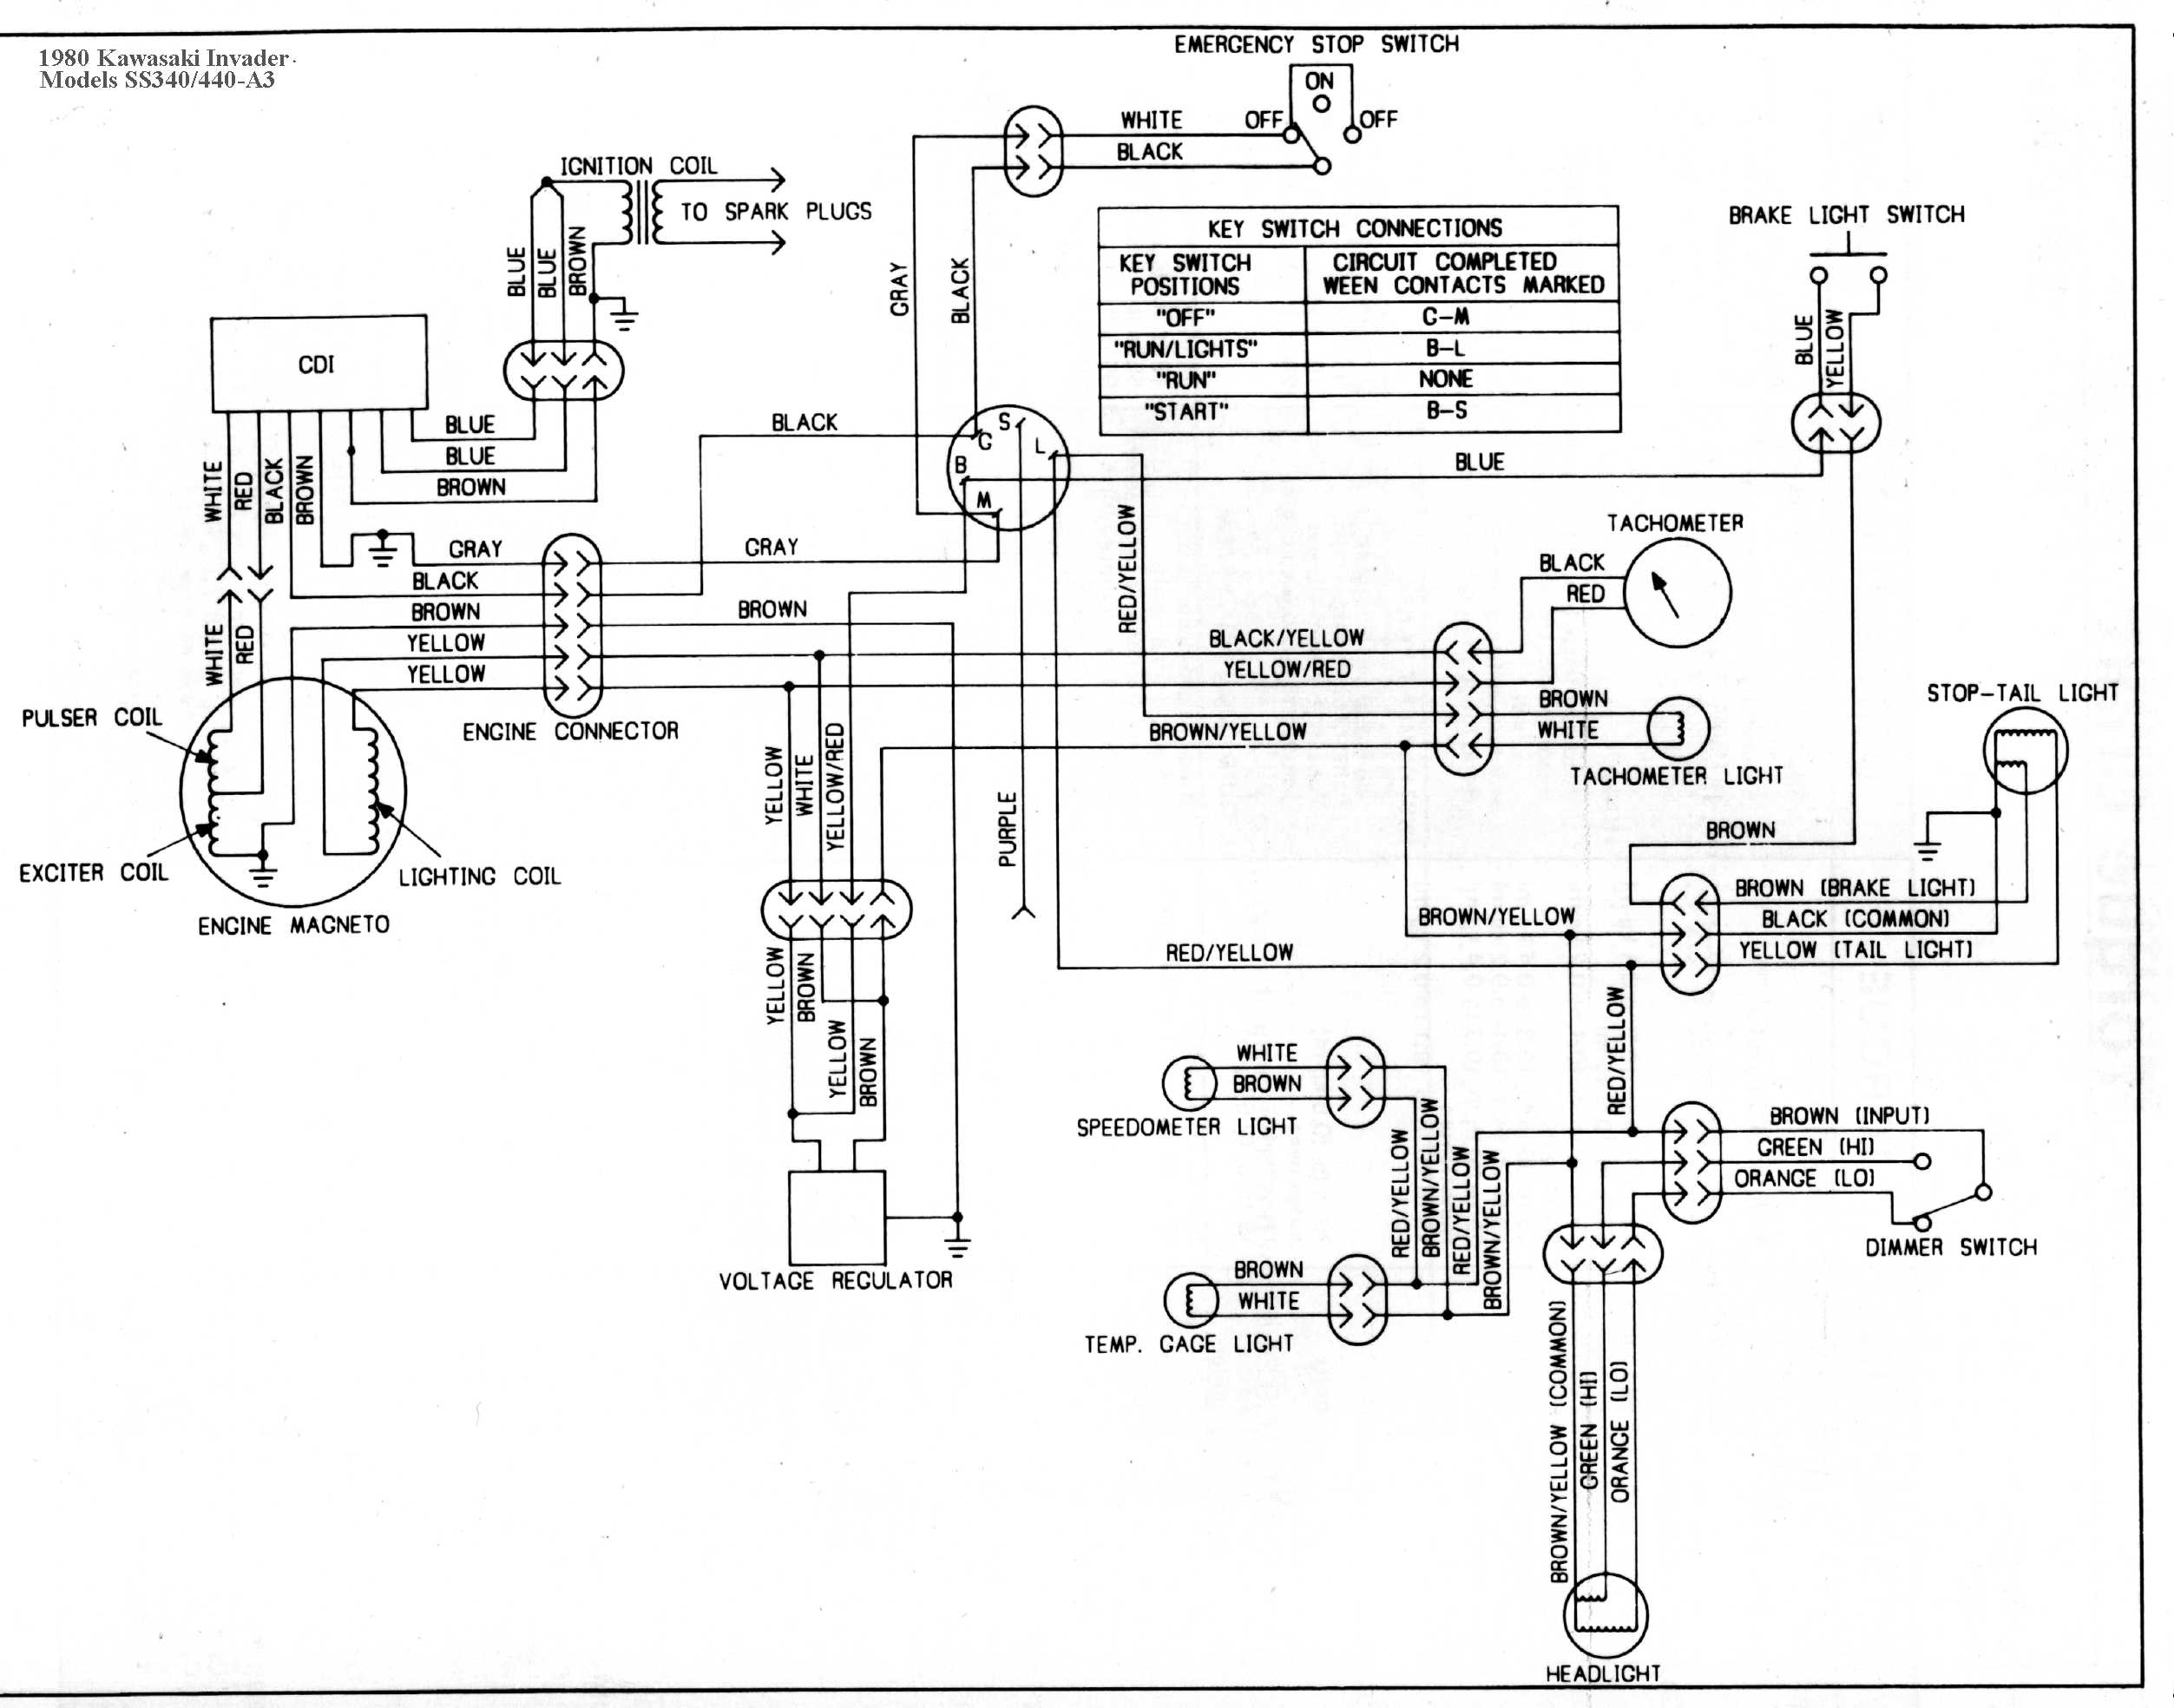 ss340a3 kawasaki invader snowmobile wiring diagrams 1980 kawasaki 440 ltd wiring diagram at bayanpartner.co